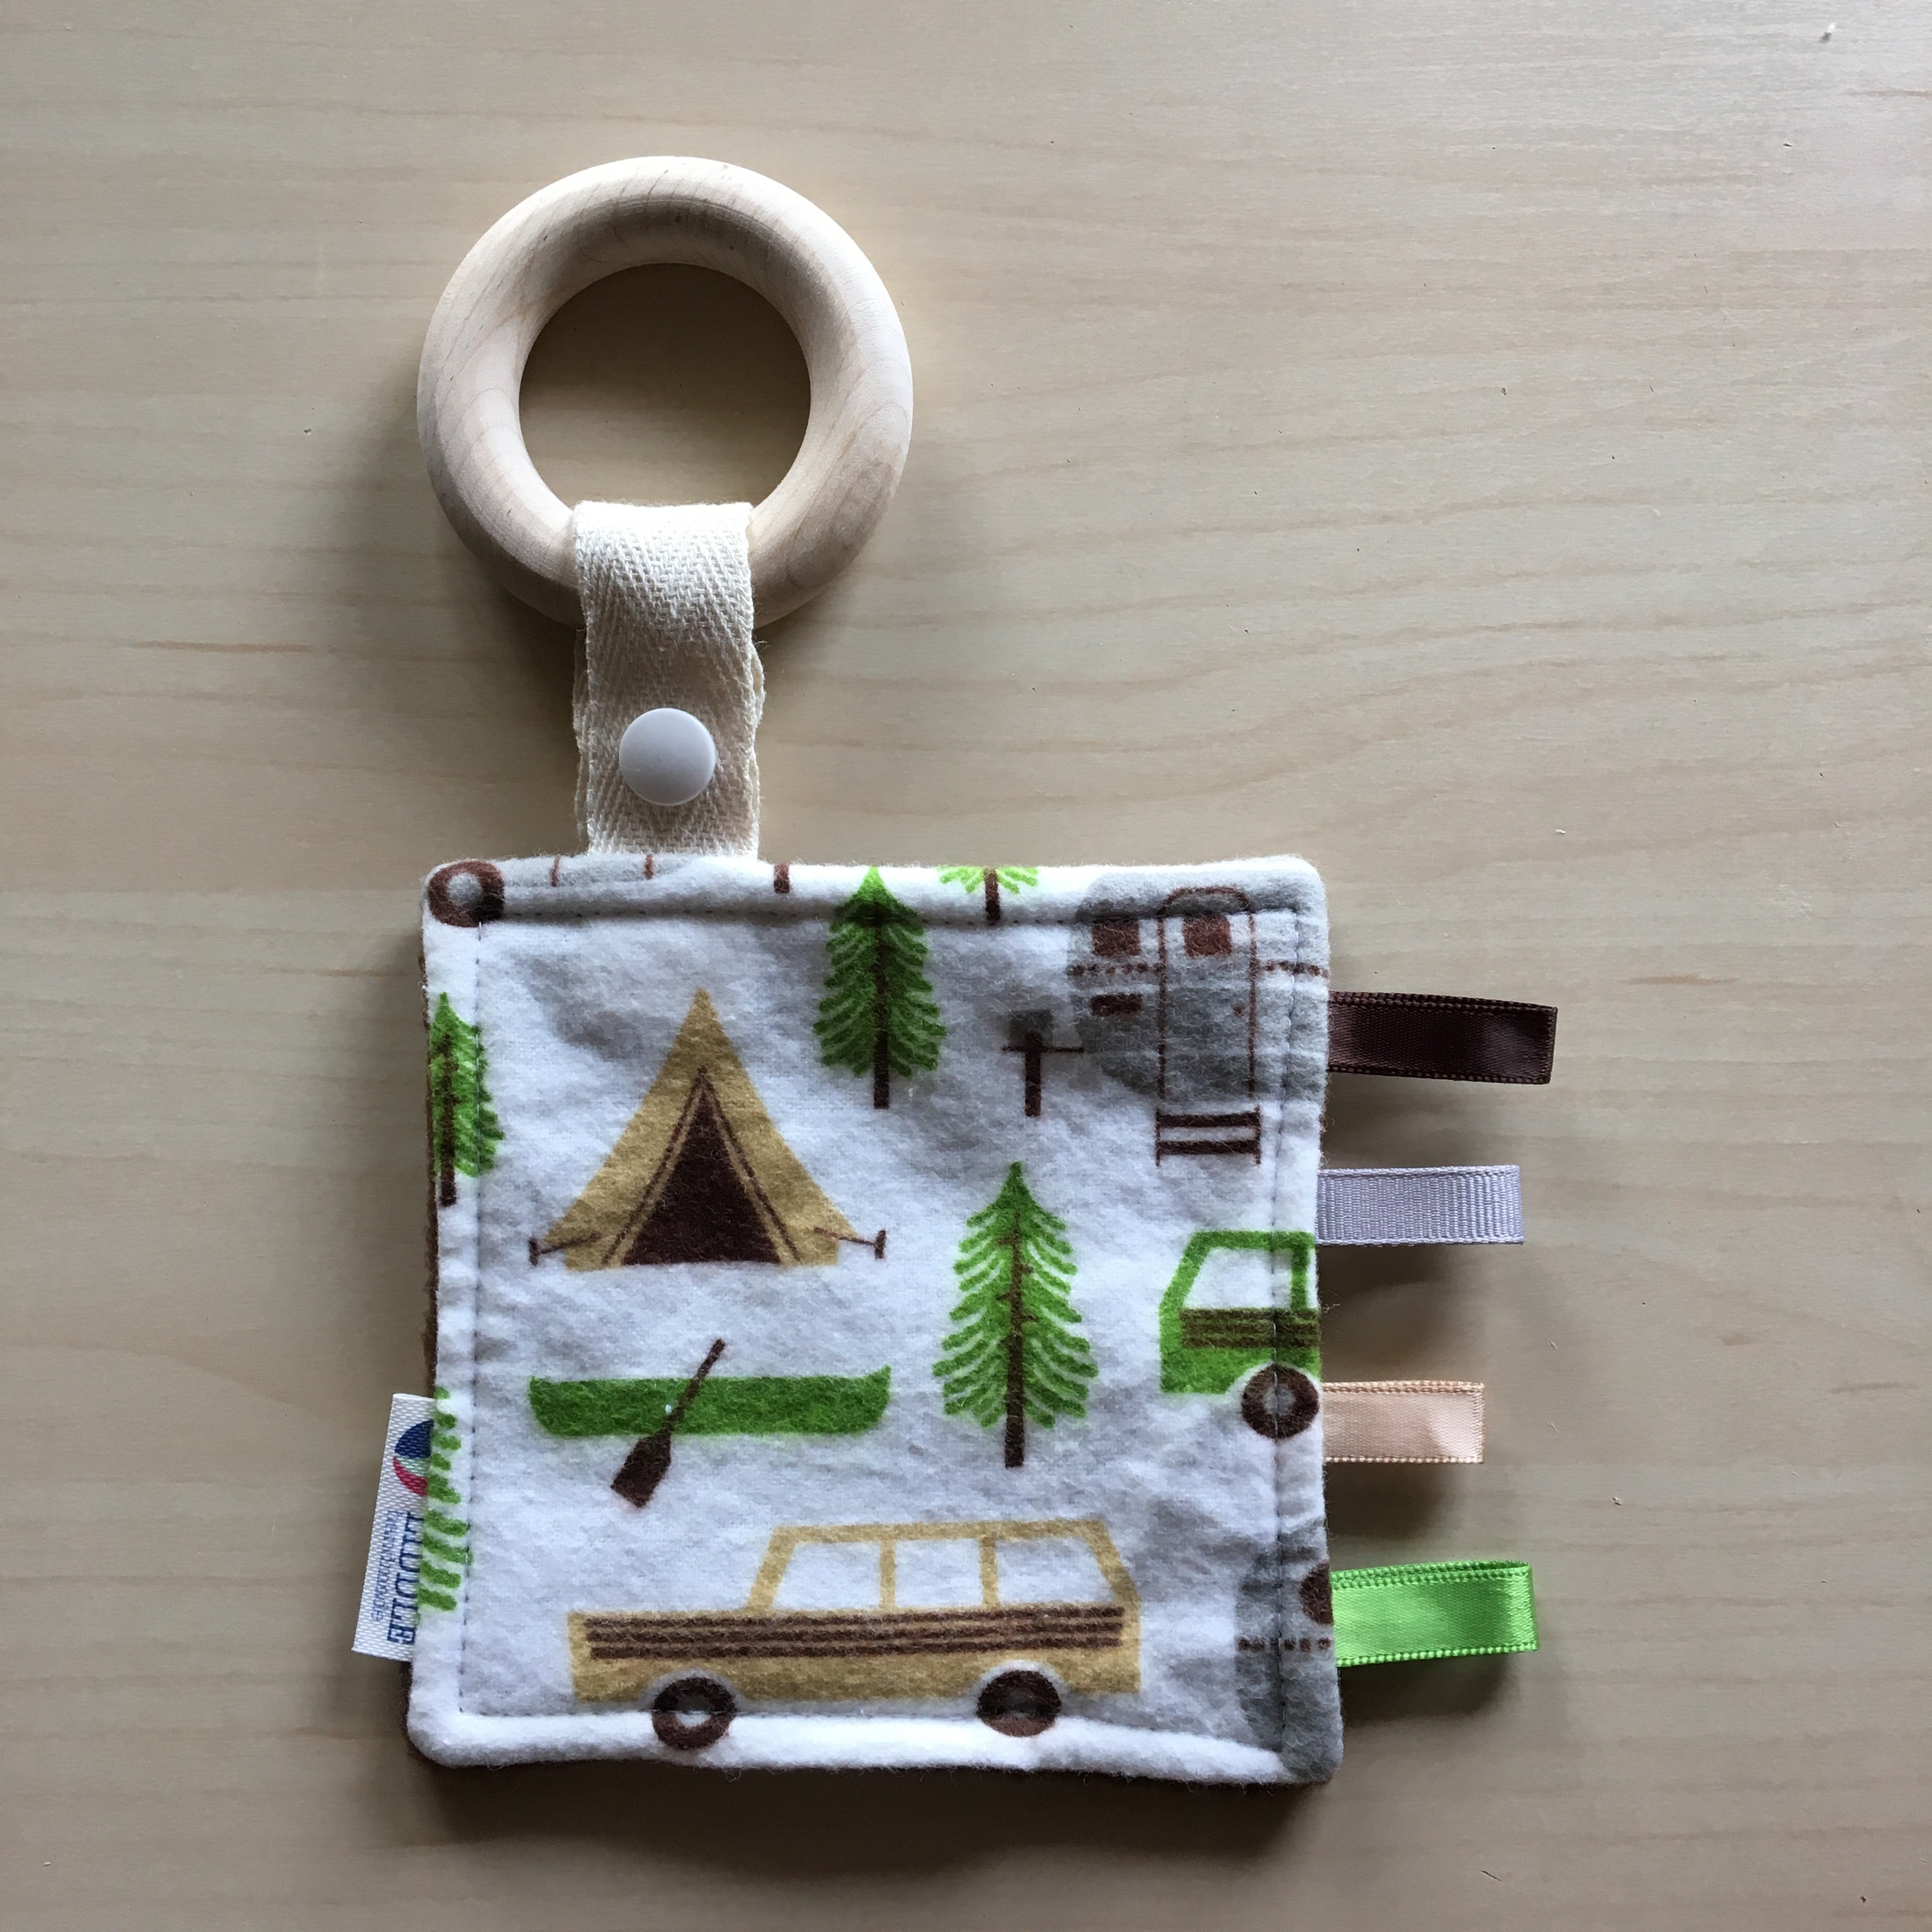 Baby - Retro Camping Wooden Sensory Teether